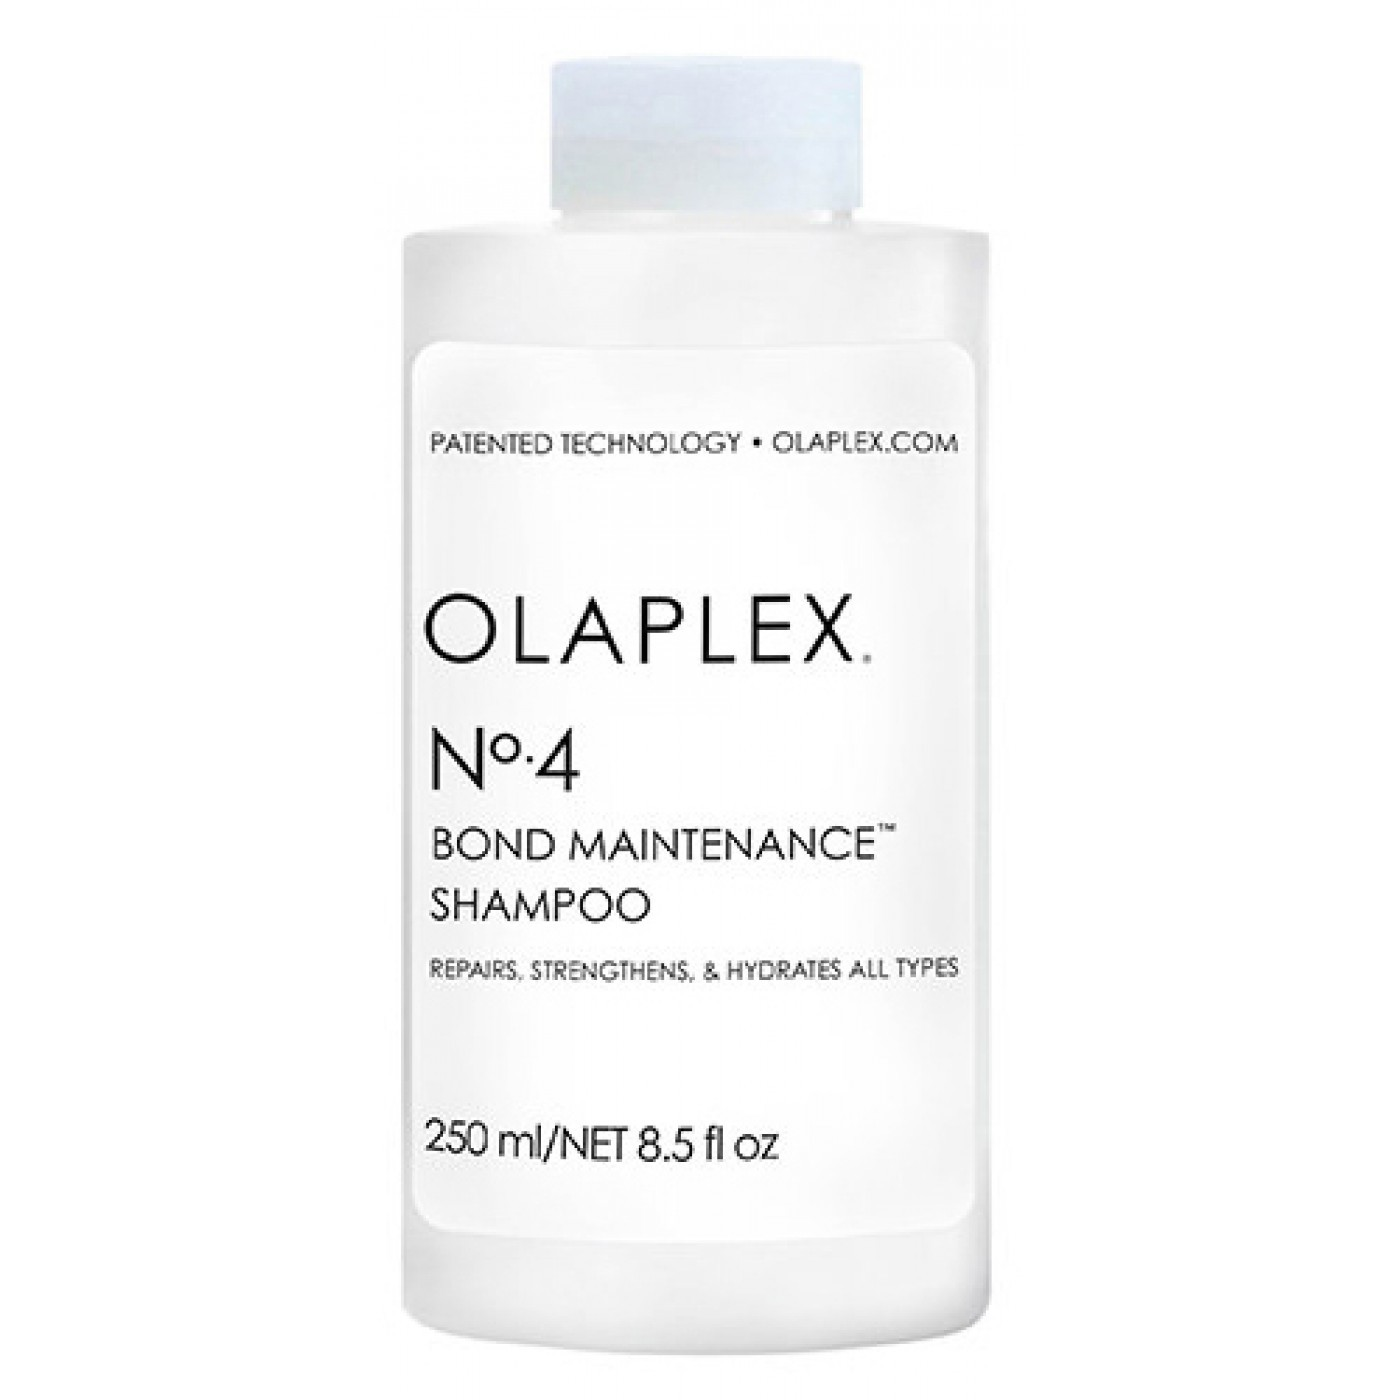 OLAPLEX Bond Maintenance Shampoo N° 4 250 ml